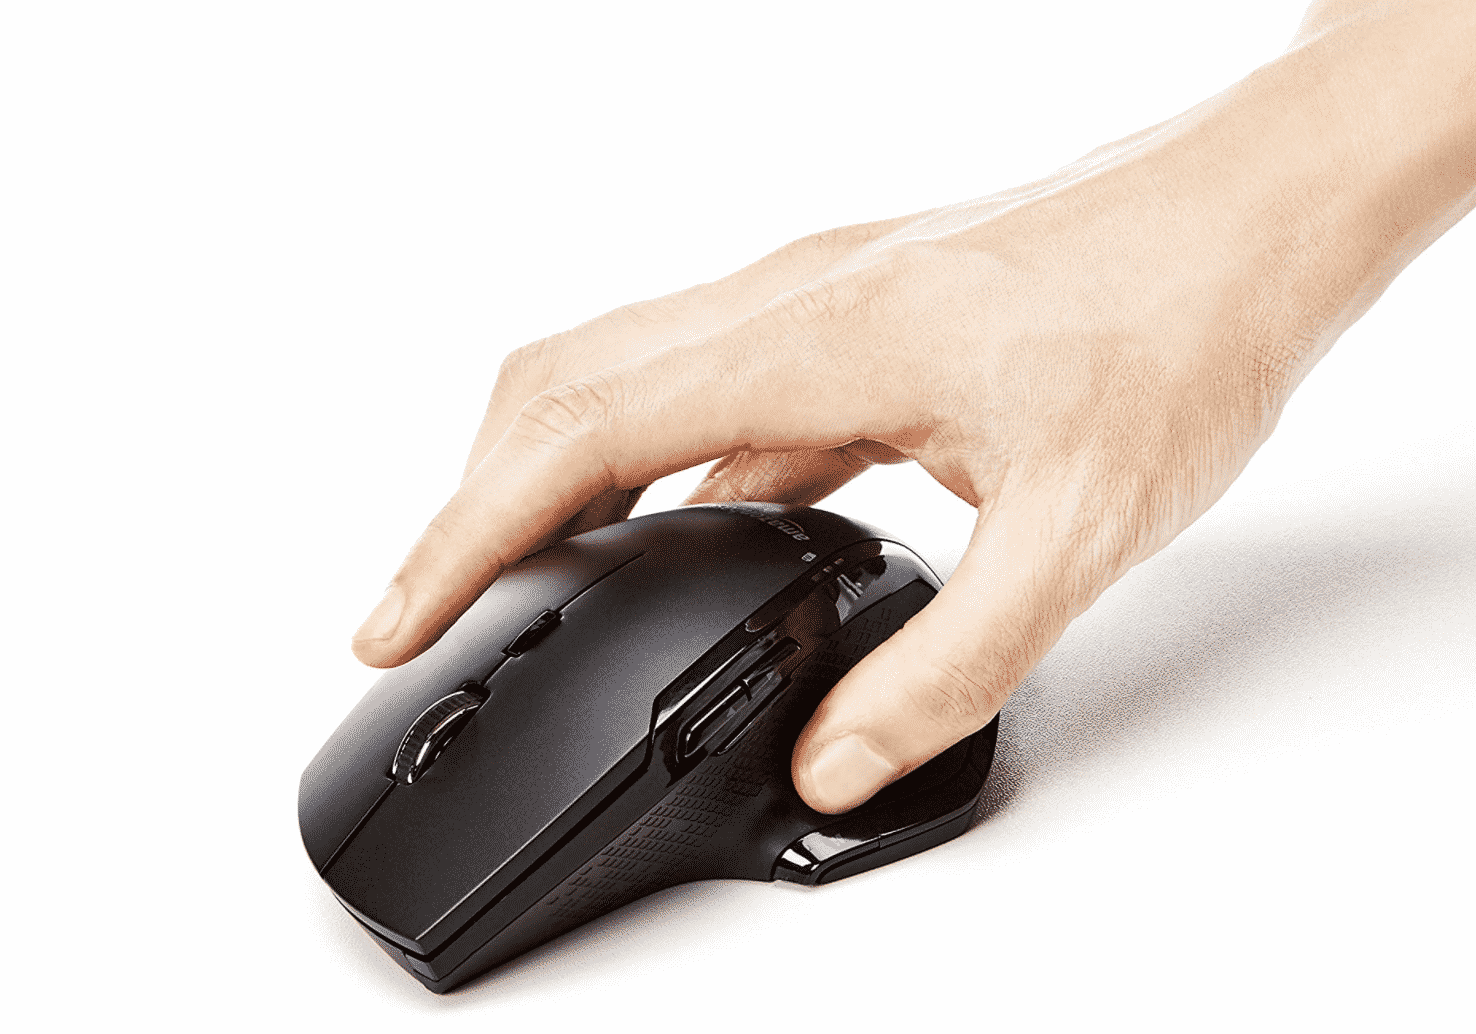 Save 29% on a solid and hardworking mouse from Amazon